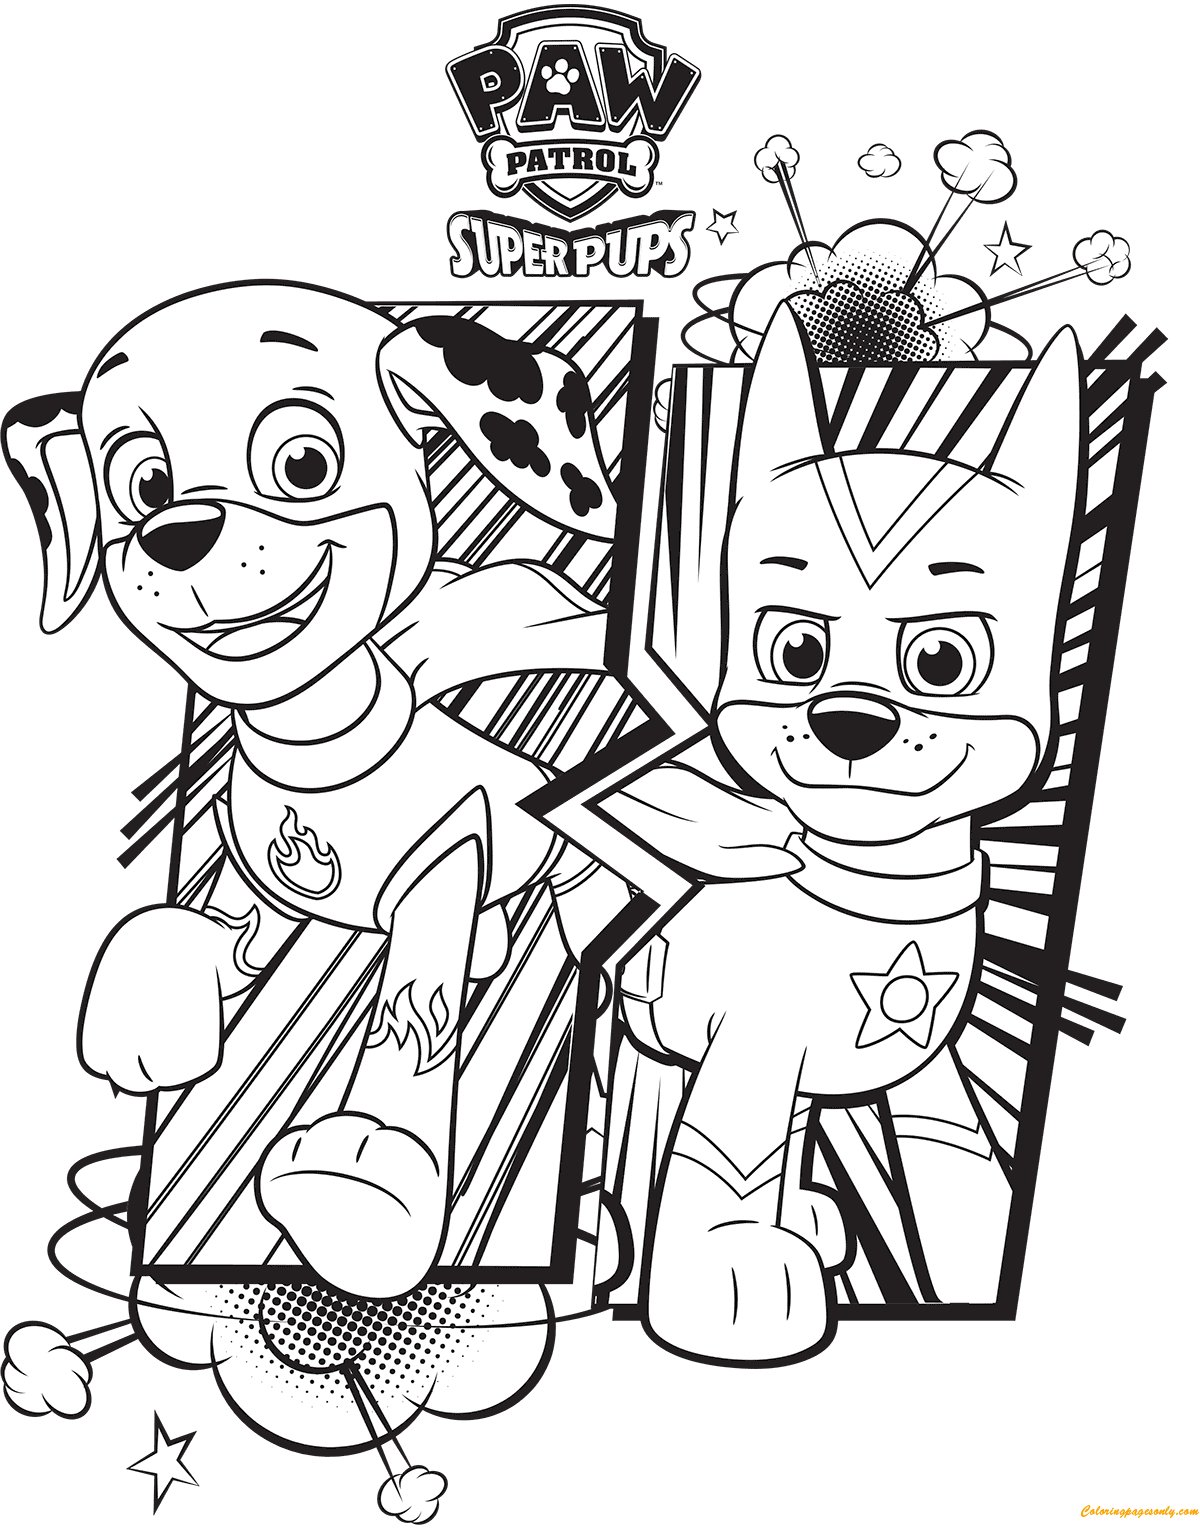 Paw Patrol Super Pups Chase And Marshall Coloring Page Free